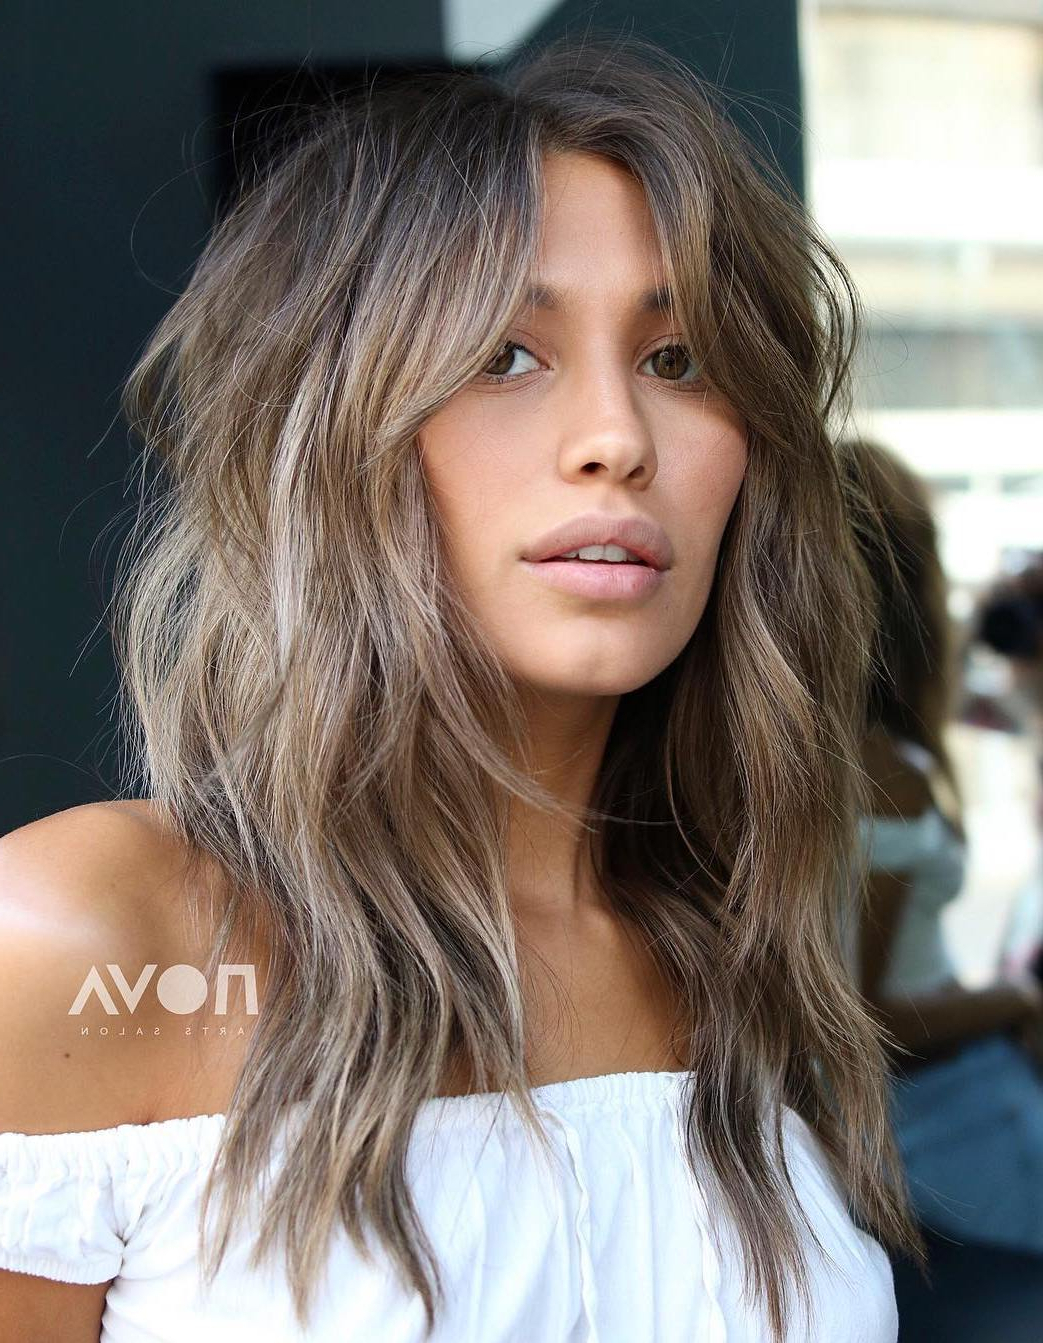 40 Modern Shag Haircuts For Women To Make A Splash In Famous Mid Length Light Blonde Shag Haircuts With Bangs (View 13 of 20)